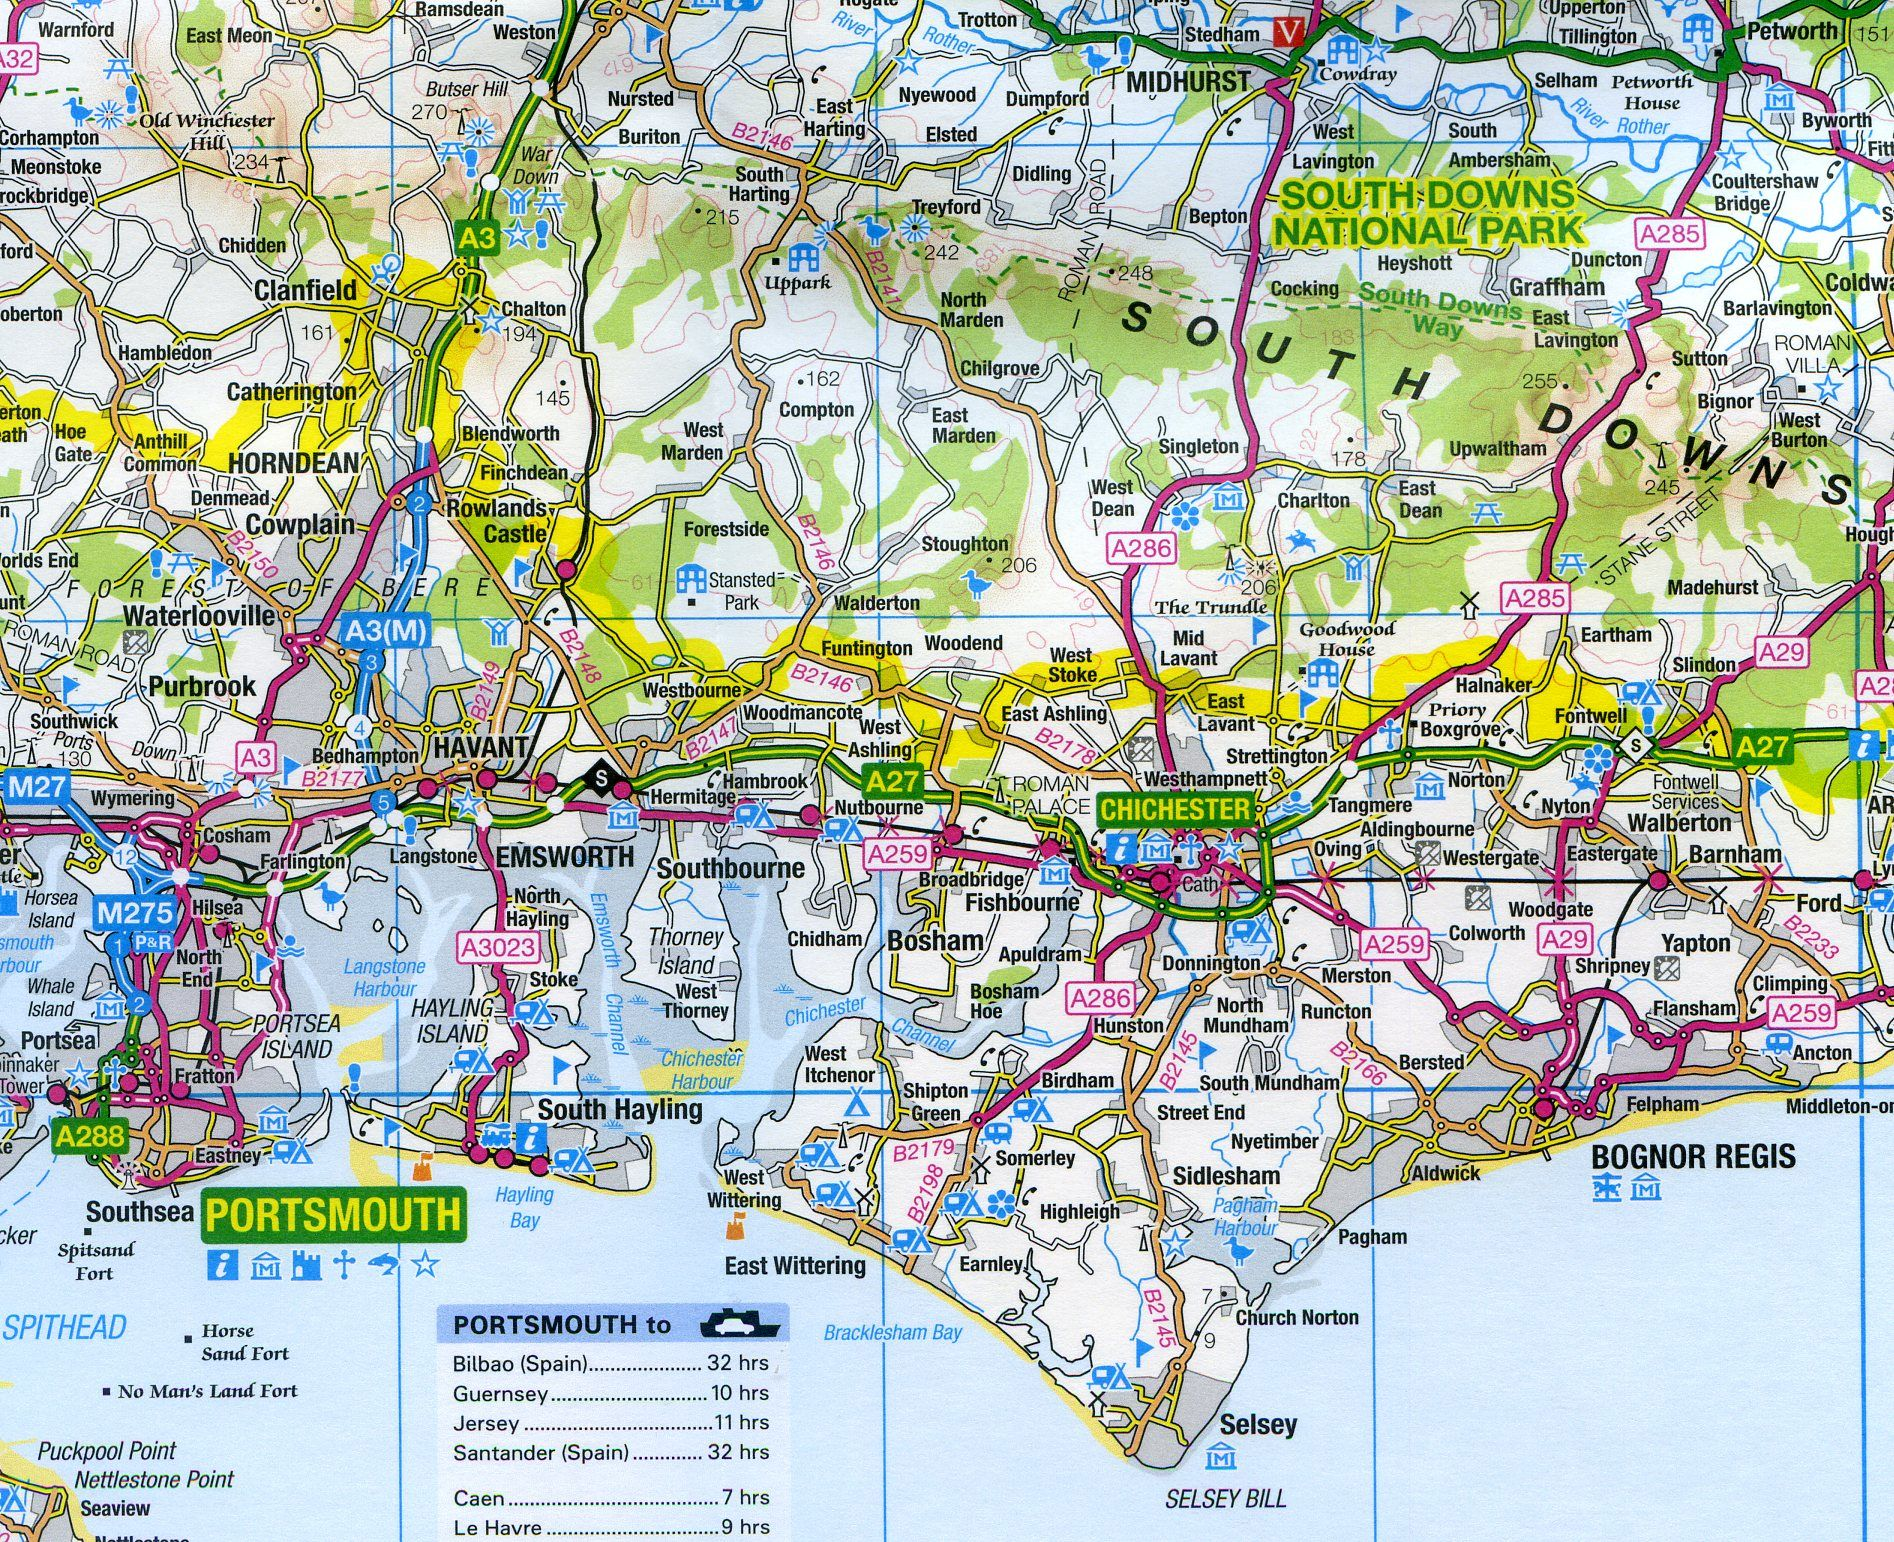 Survey Road Map 8 - South East England on